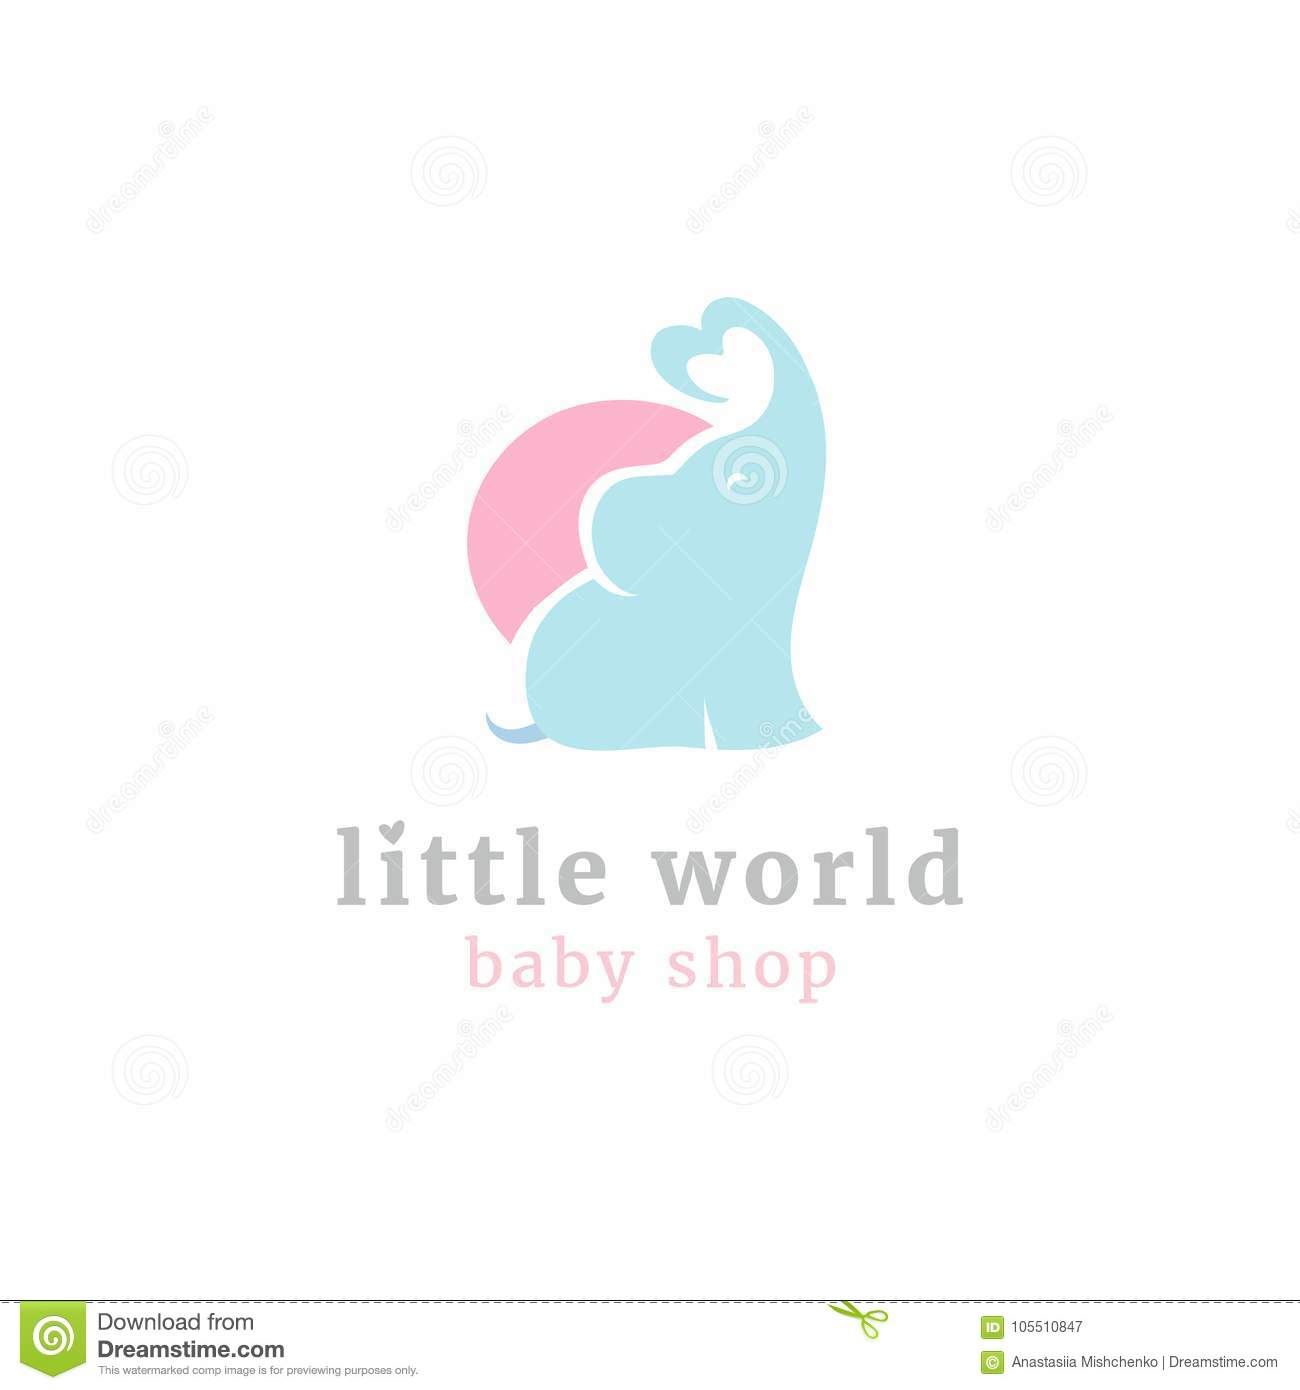 Cute little elephant logo. Kids toy shop and baby goods store mascot